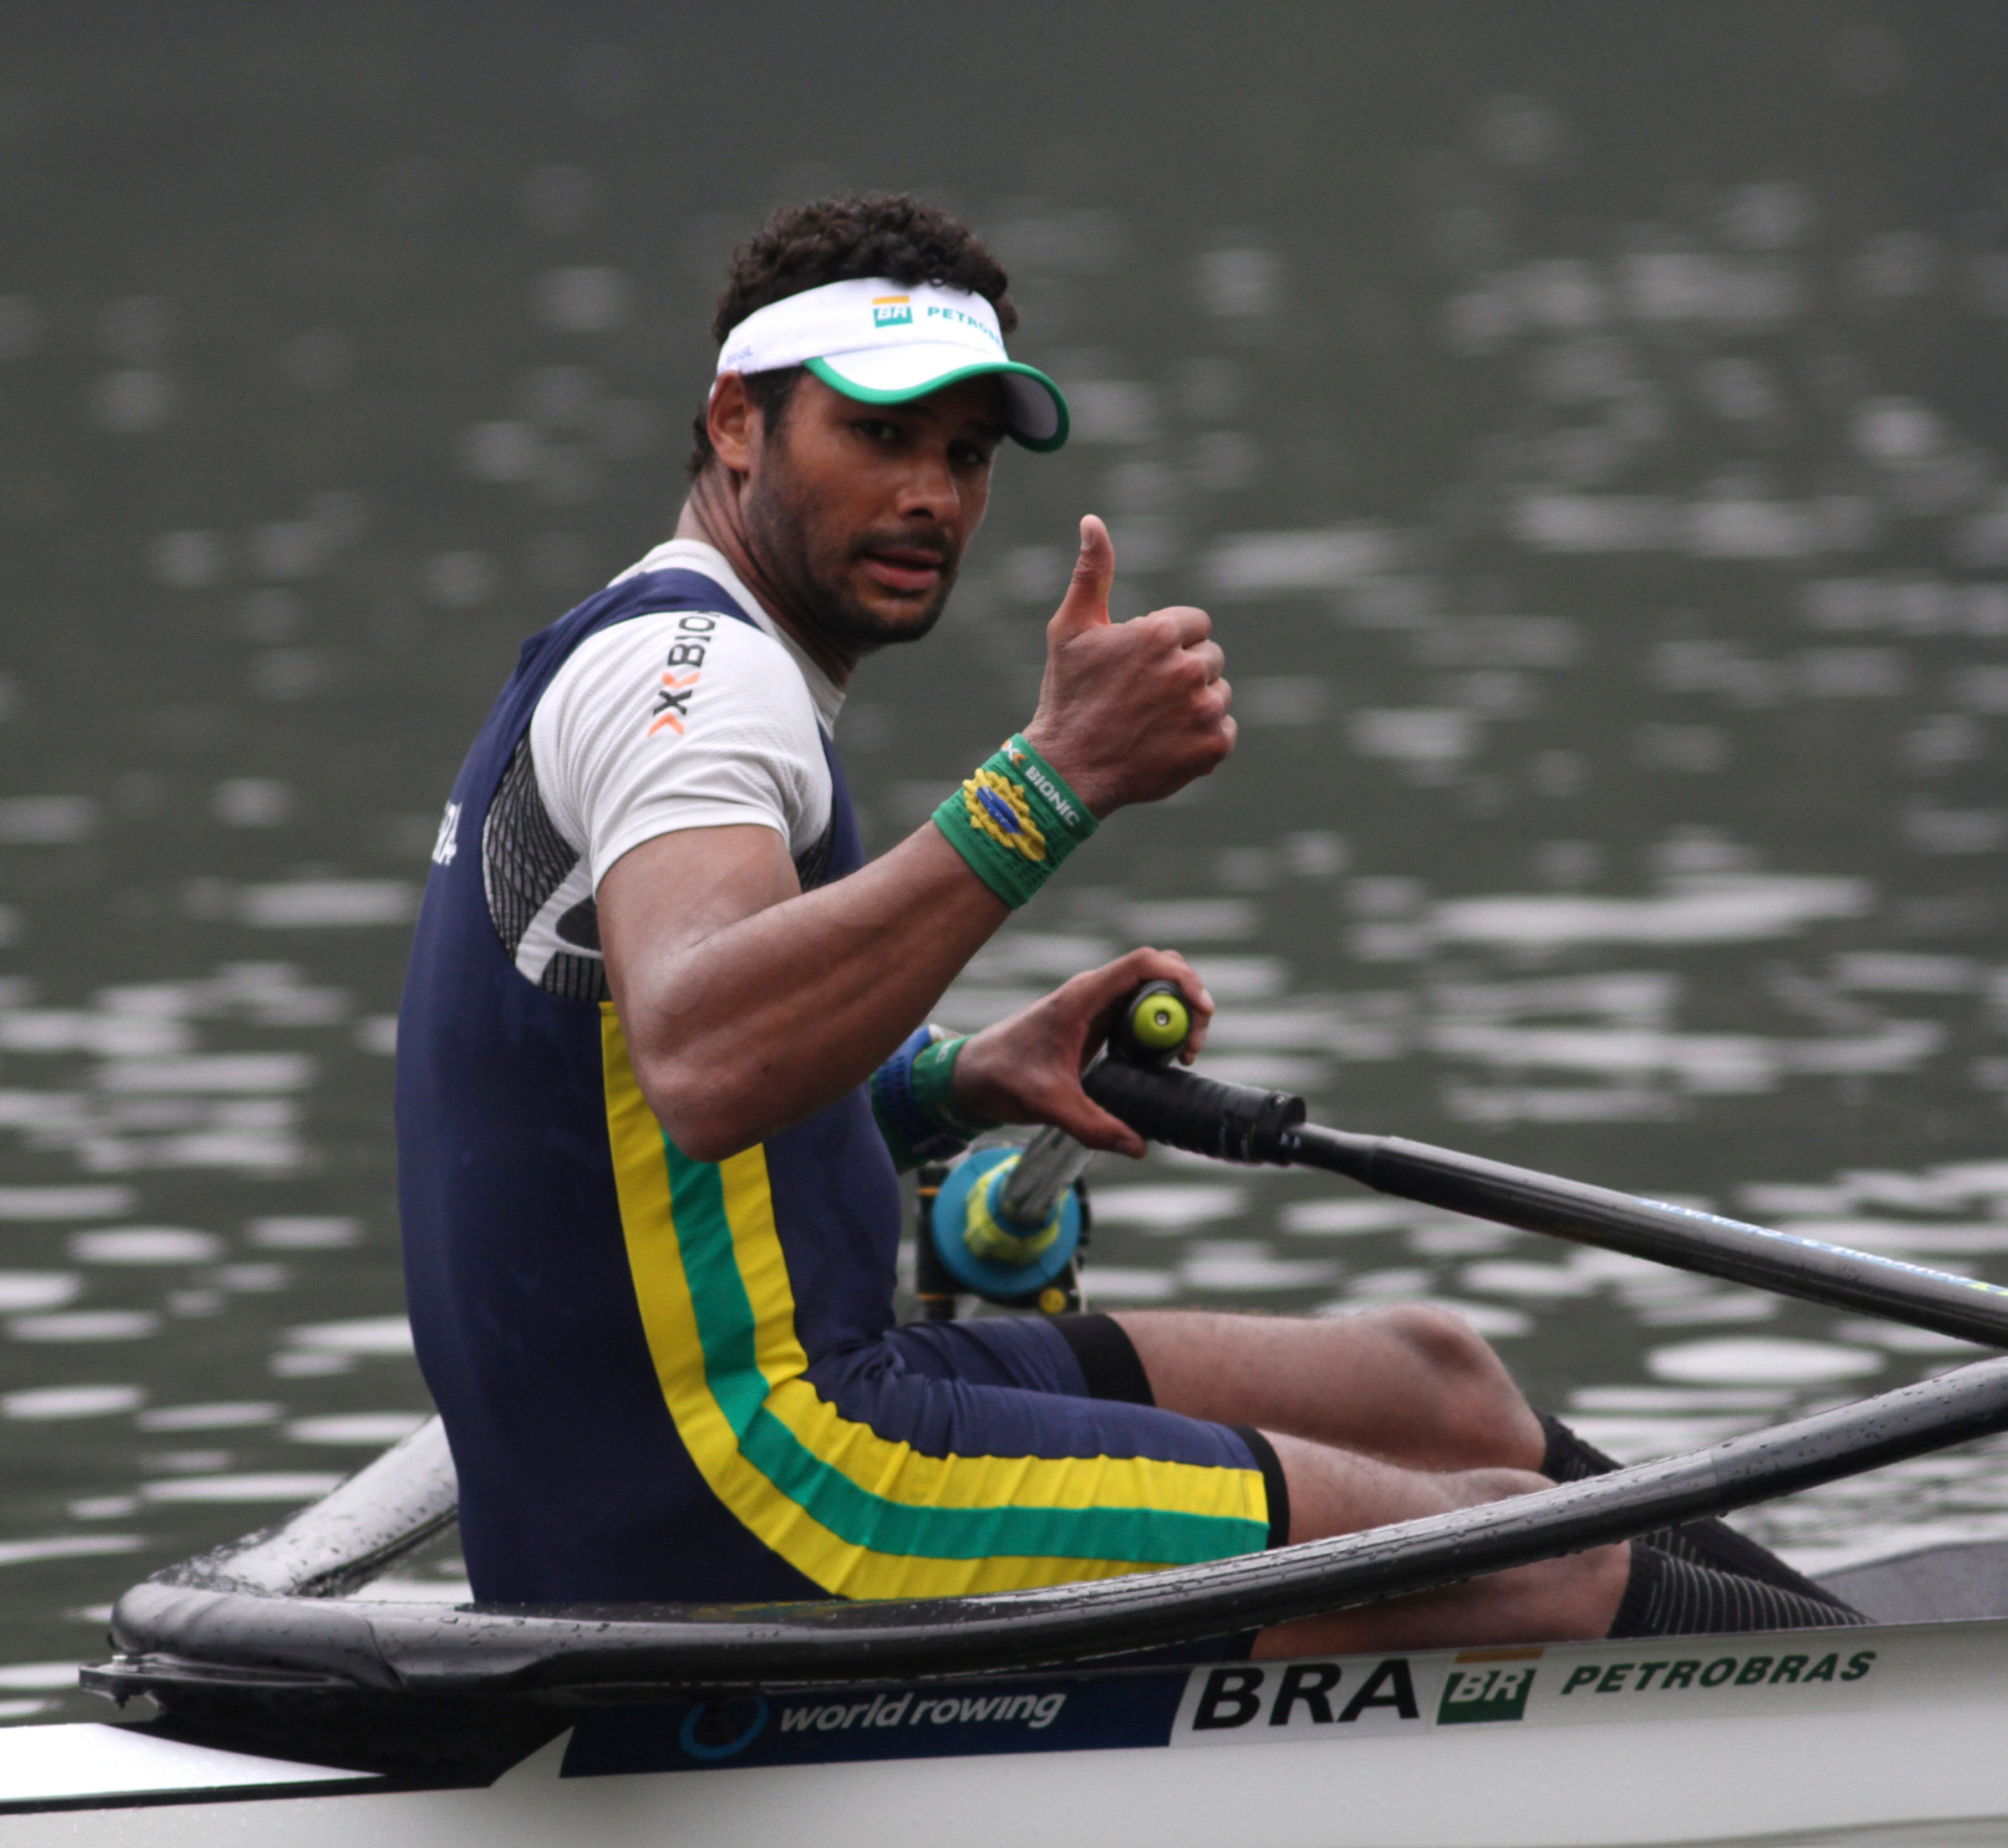 CURAUMA, CHILE - MARCH 24: Steve Hiestand of Brazil gestures after the final race the men's single rowing during the final day of Latin America Olimpyc Qualification Regata for the Rio 2016 Olympic Games at Lake Curauma on March 24, 2016 in Curauma,Chile (Photo by Marcelo Benitez/Latincontent/Getty Images)